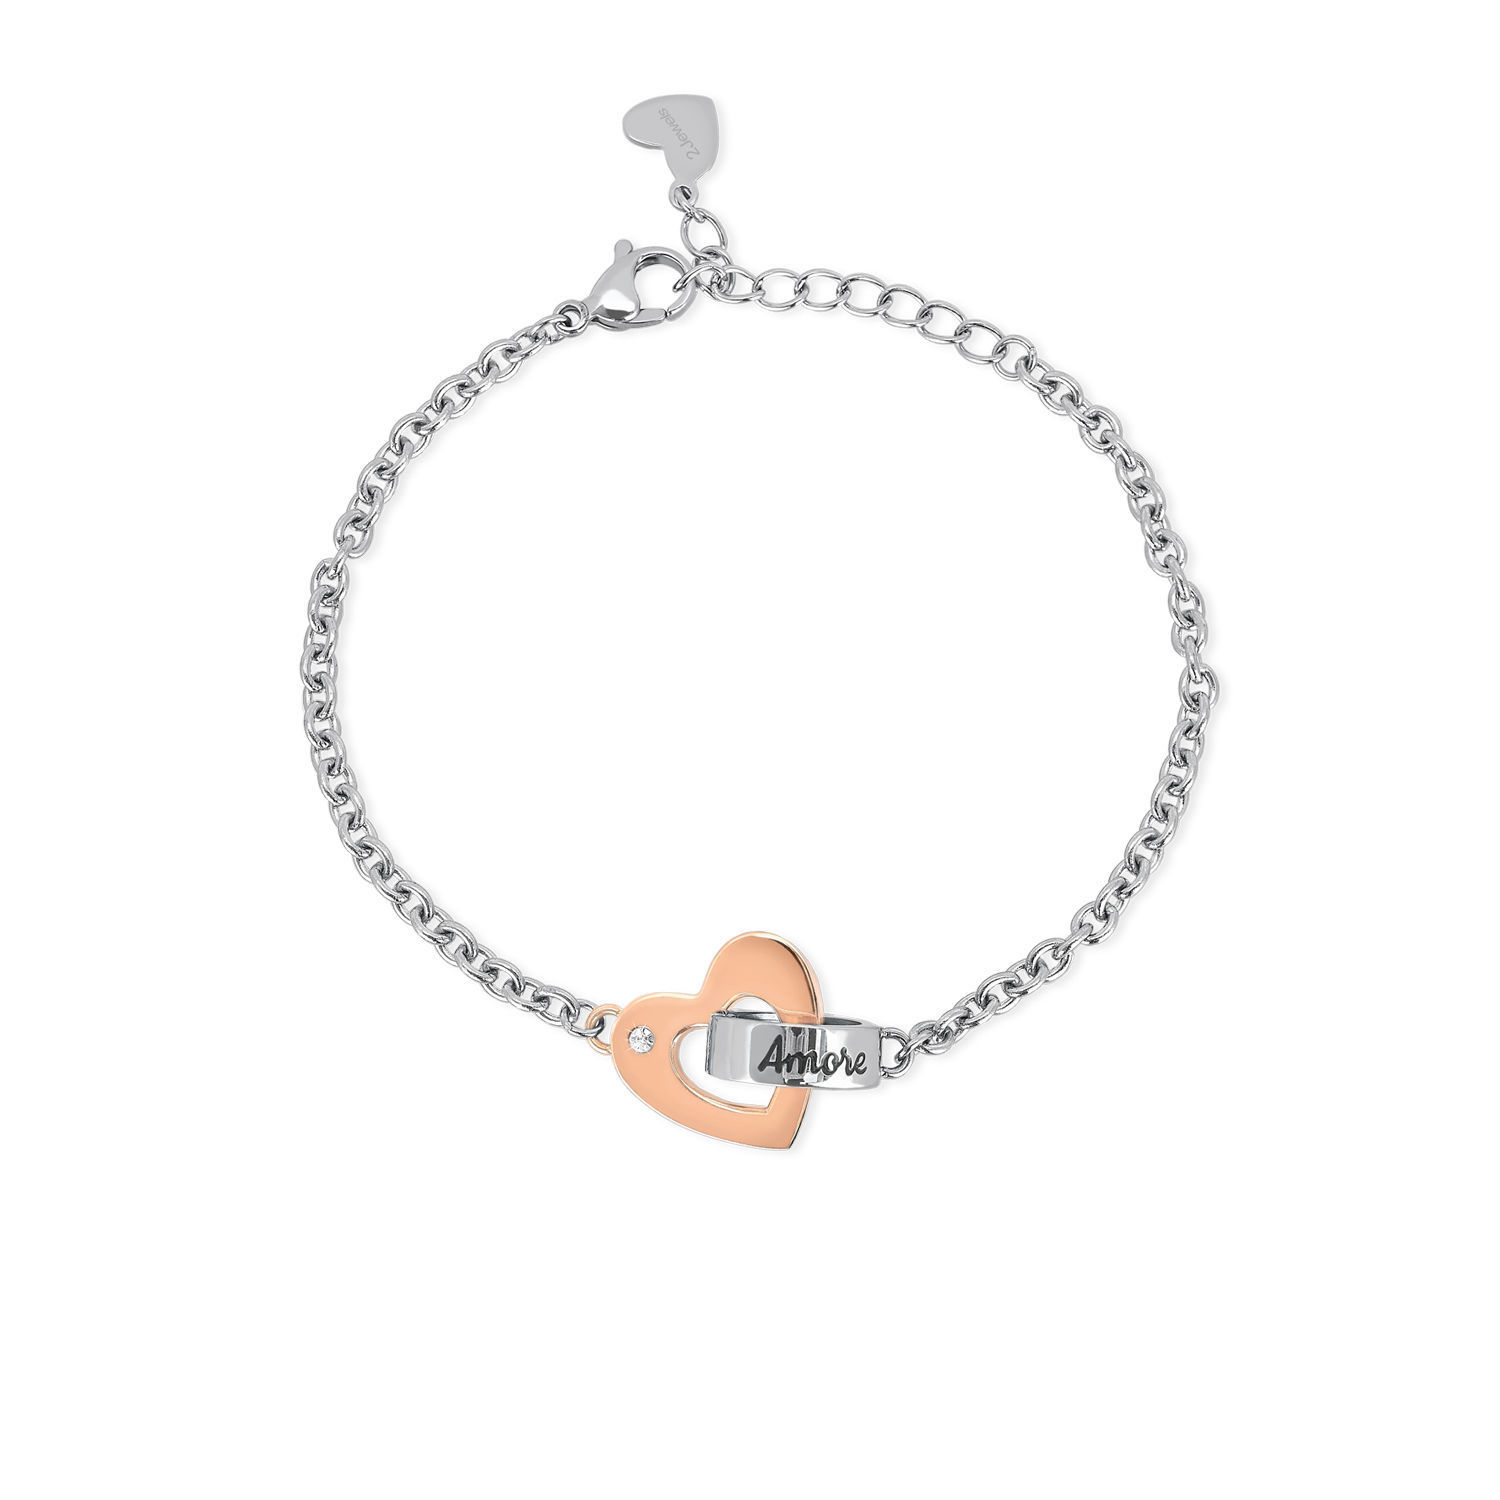 2 Jewels Bracciale Donna 231838 Acciaio 316L Link with love Beatrice Valli